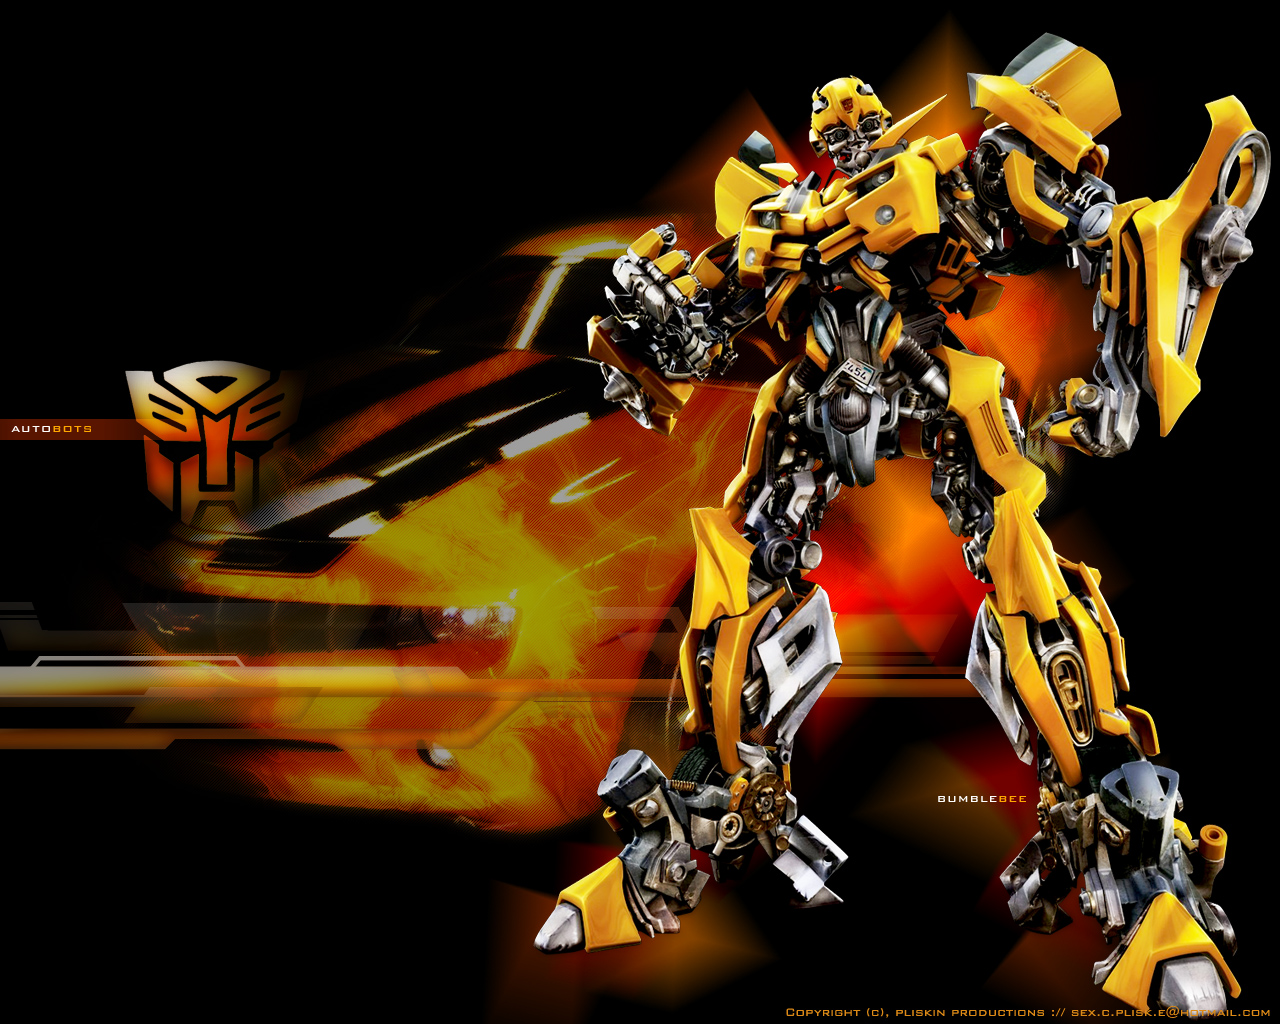 Transformers bumblebee wallpaper wallpapersafari - Transformers desktop backgrounds ...